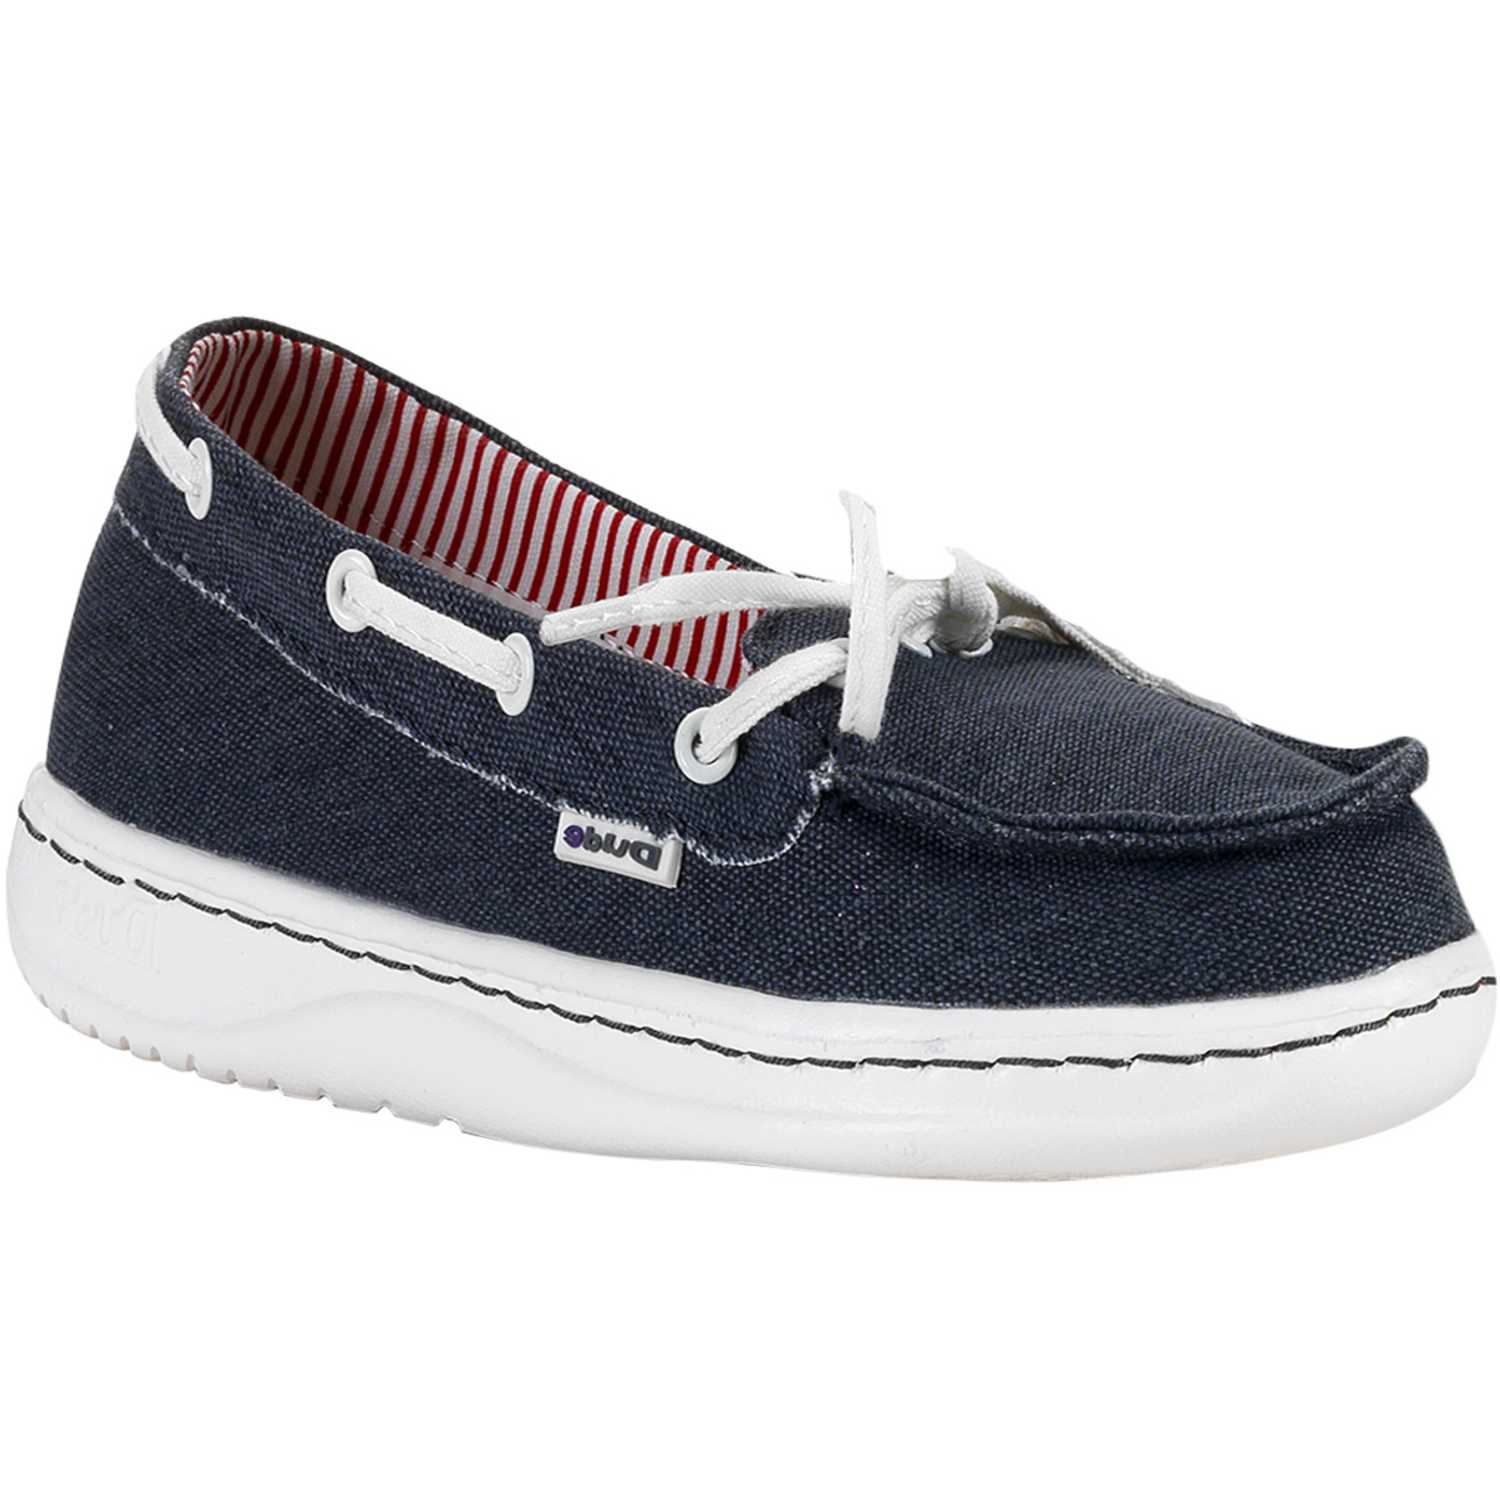 Hey Dude Moka Navy / Blanco Walking